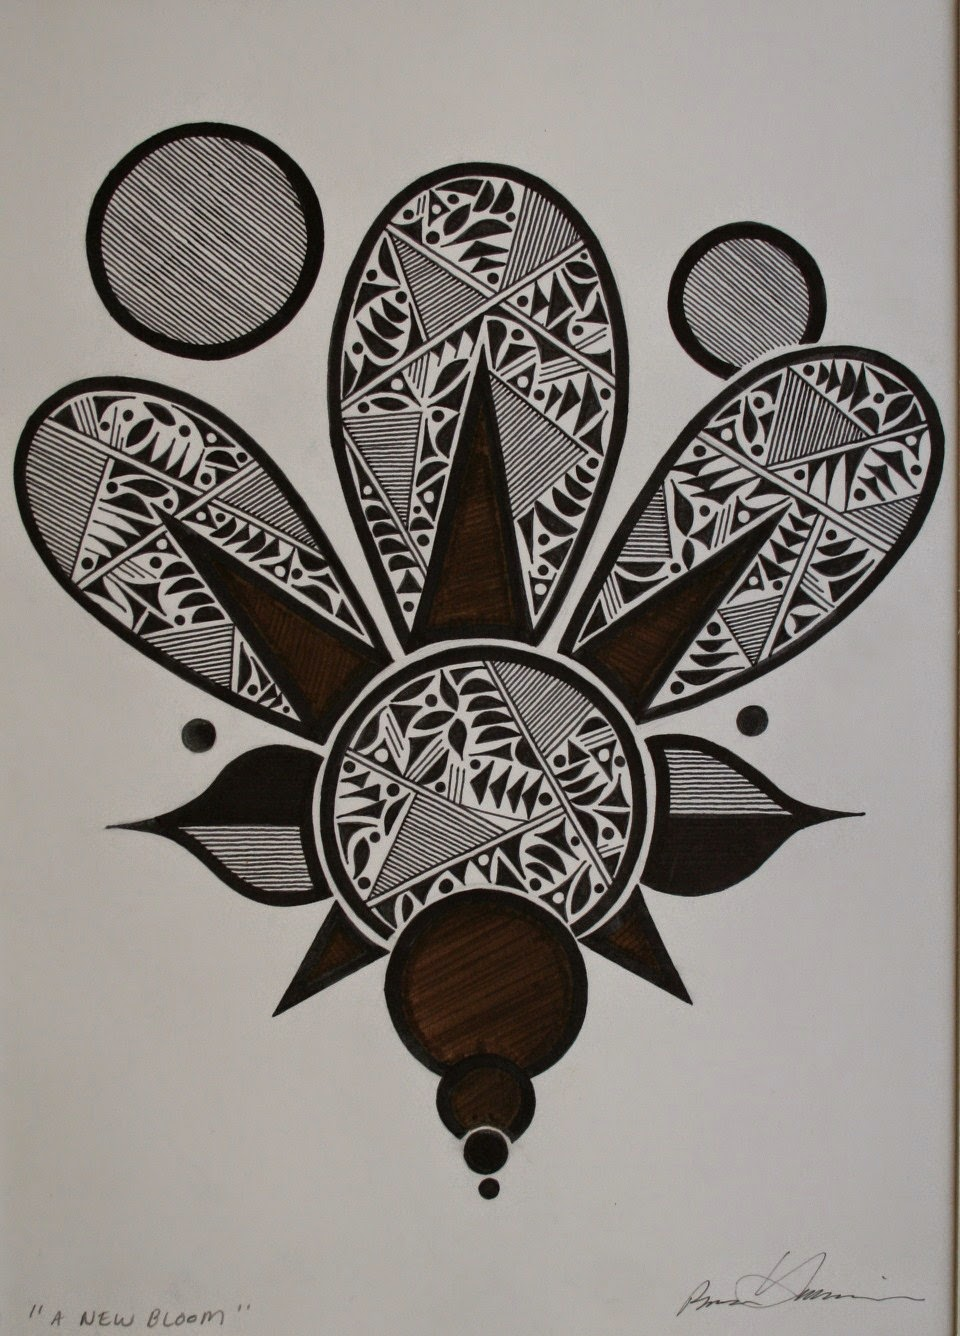 Black And Brown Pen Design Image Size 8 5 X 12 25 Matted In A Light Tan Mat With An Off White Frame 16 Itself Matting 175 00